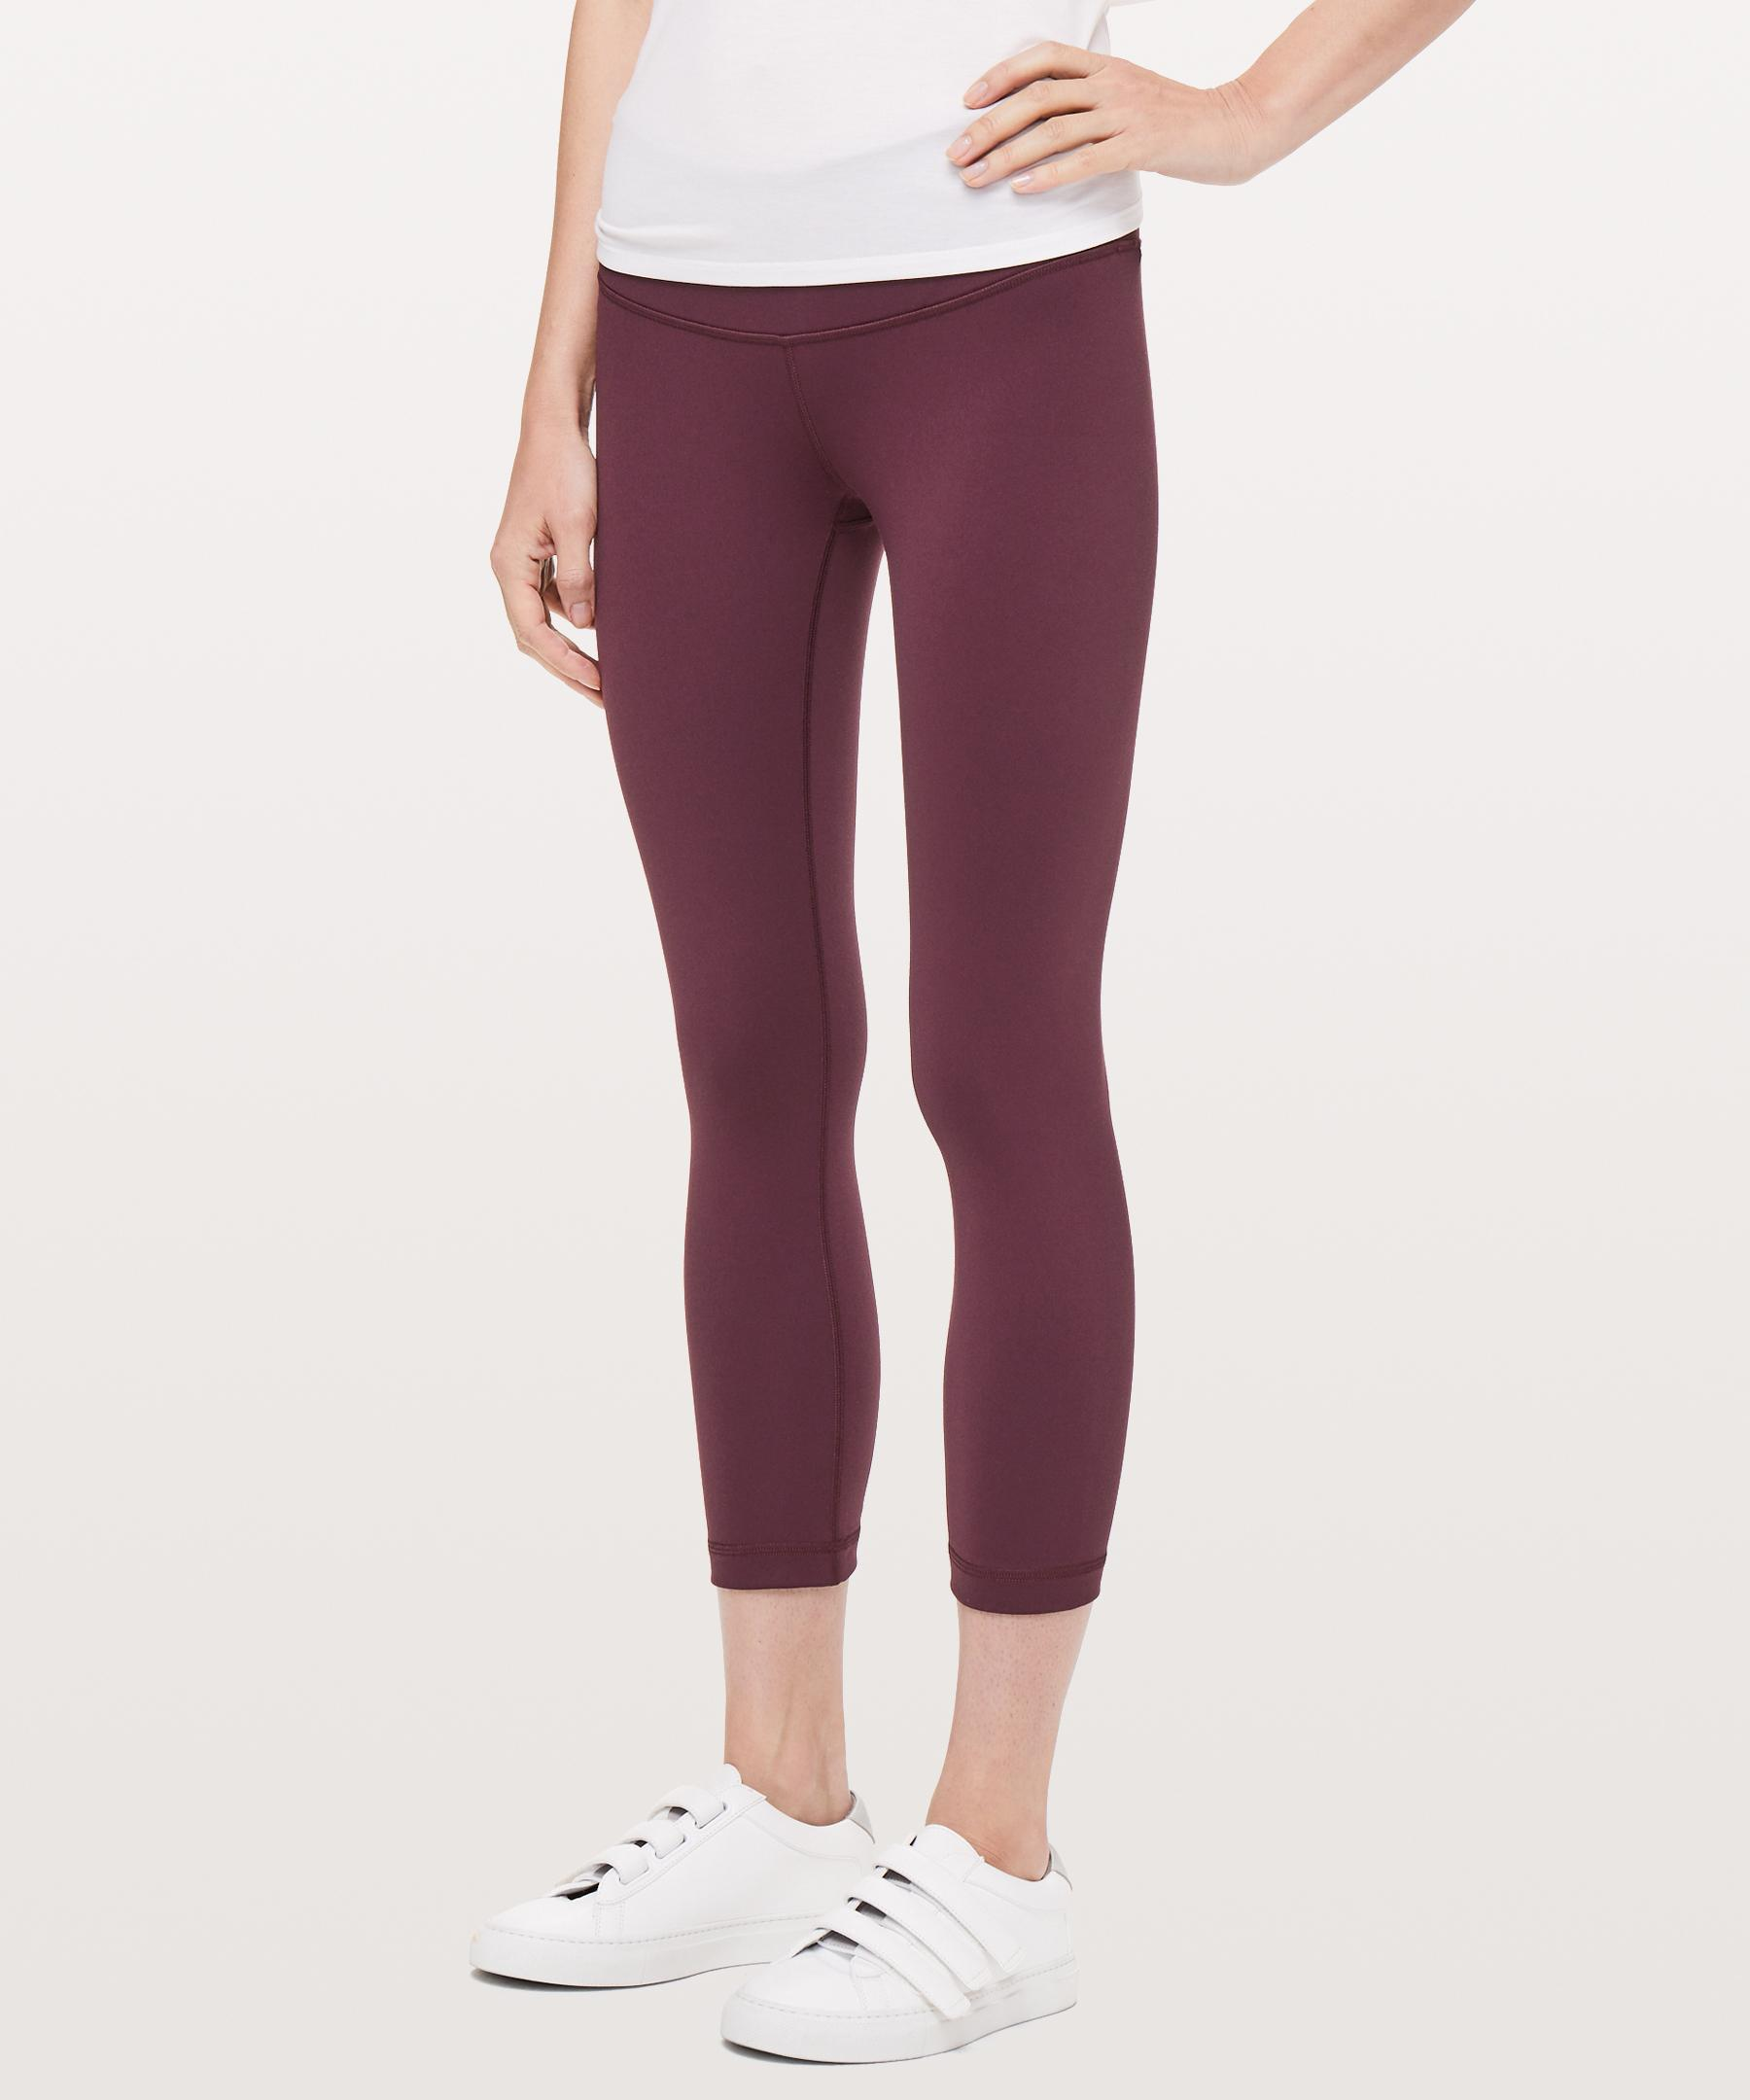 148f6f799 lululemon athletica Wunder Under Crop Iii  full-on Luon 21